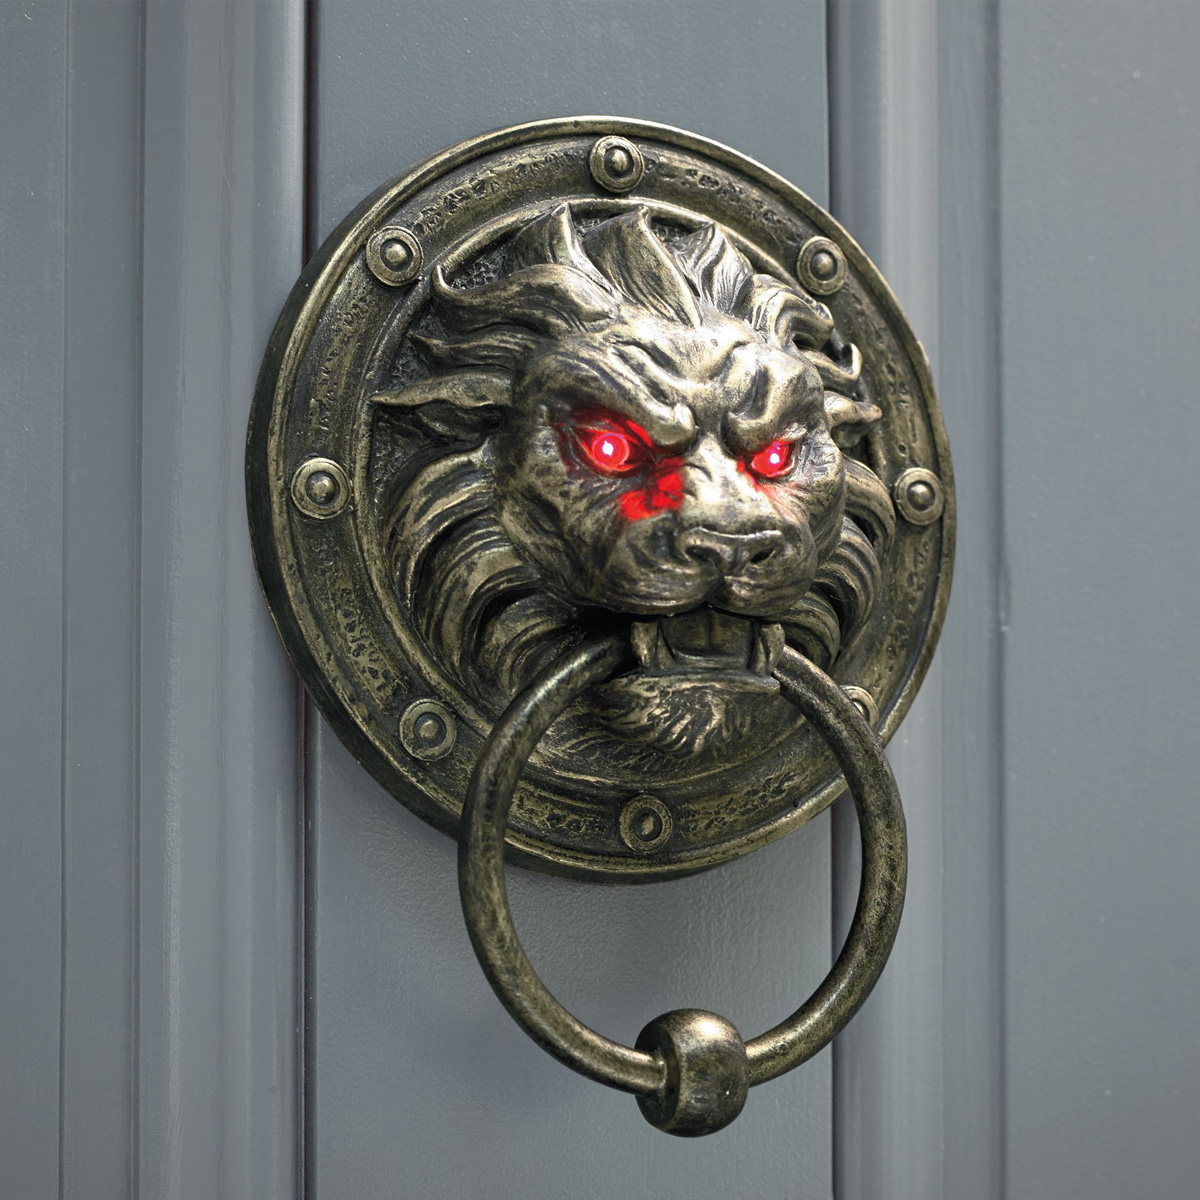 Creepy Lion Door Knocker With Glowing Eyes The Green Head